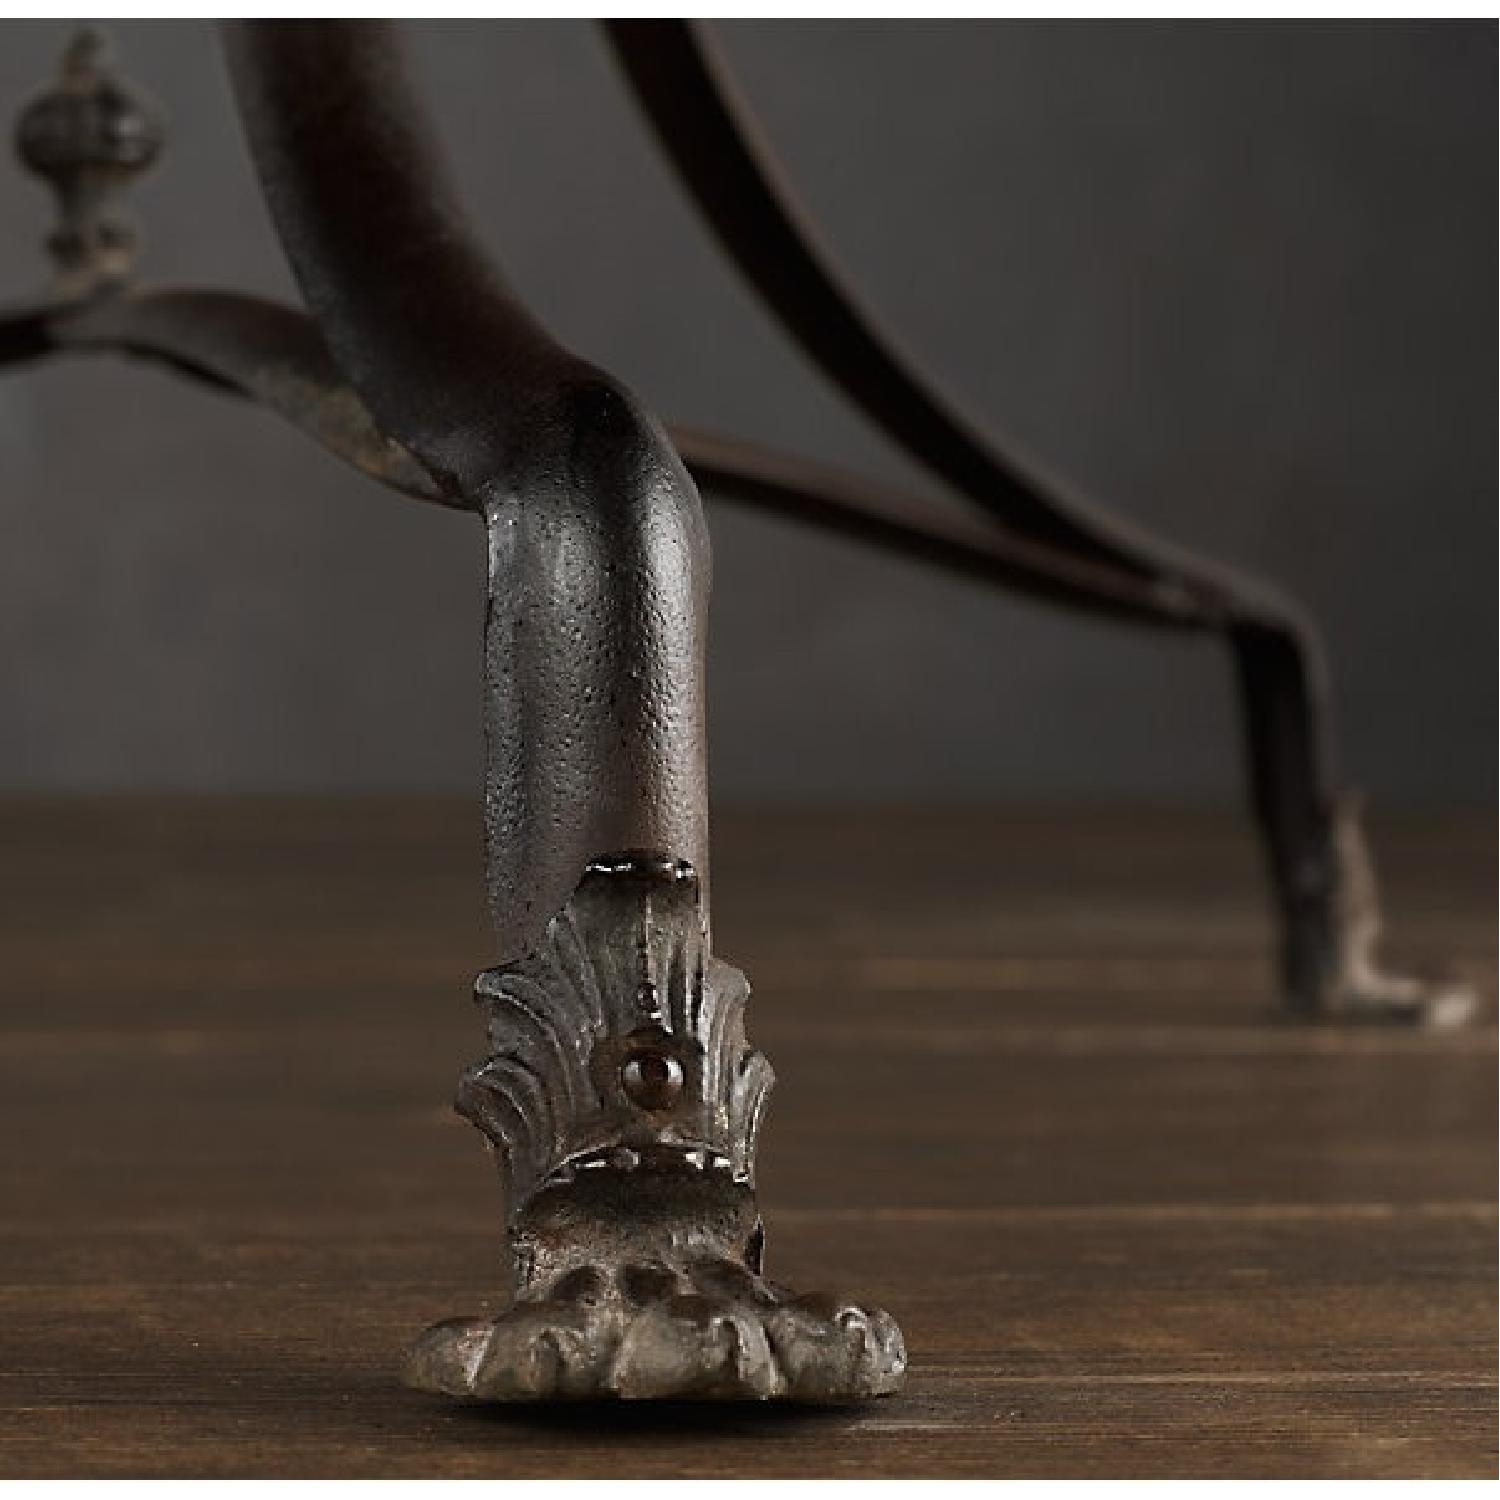 Restoration Hardware 19th C. French Lion's Foot Brasserie Table w/ 2 Chairs - image-6